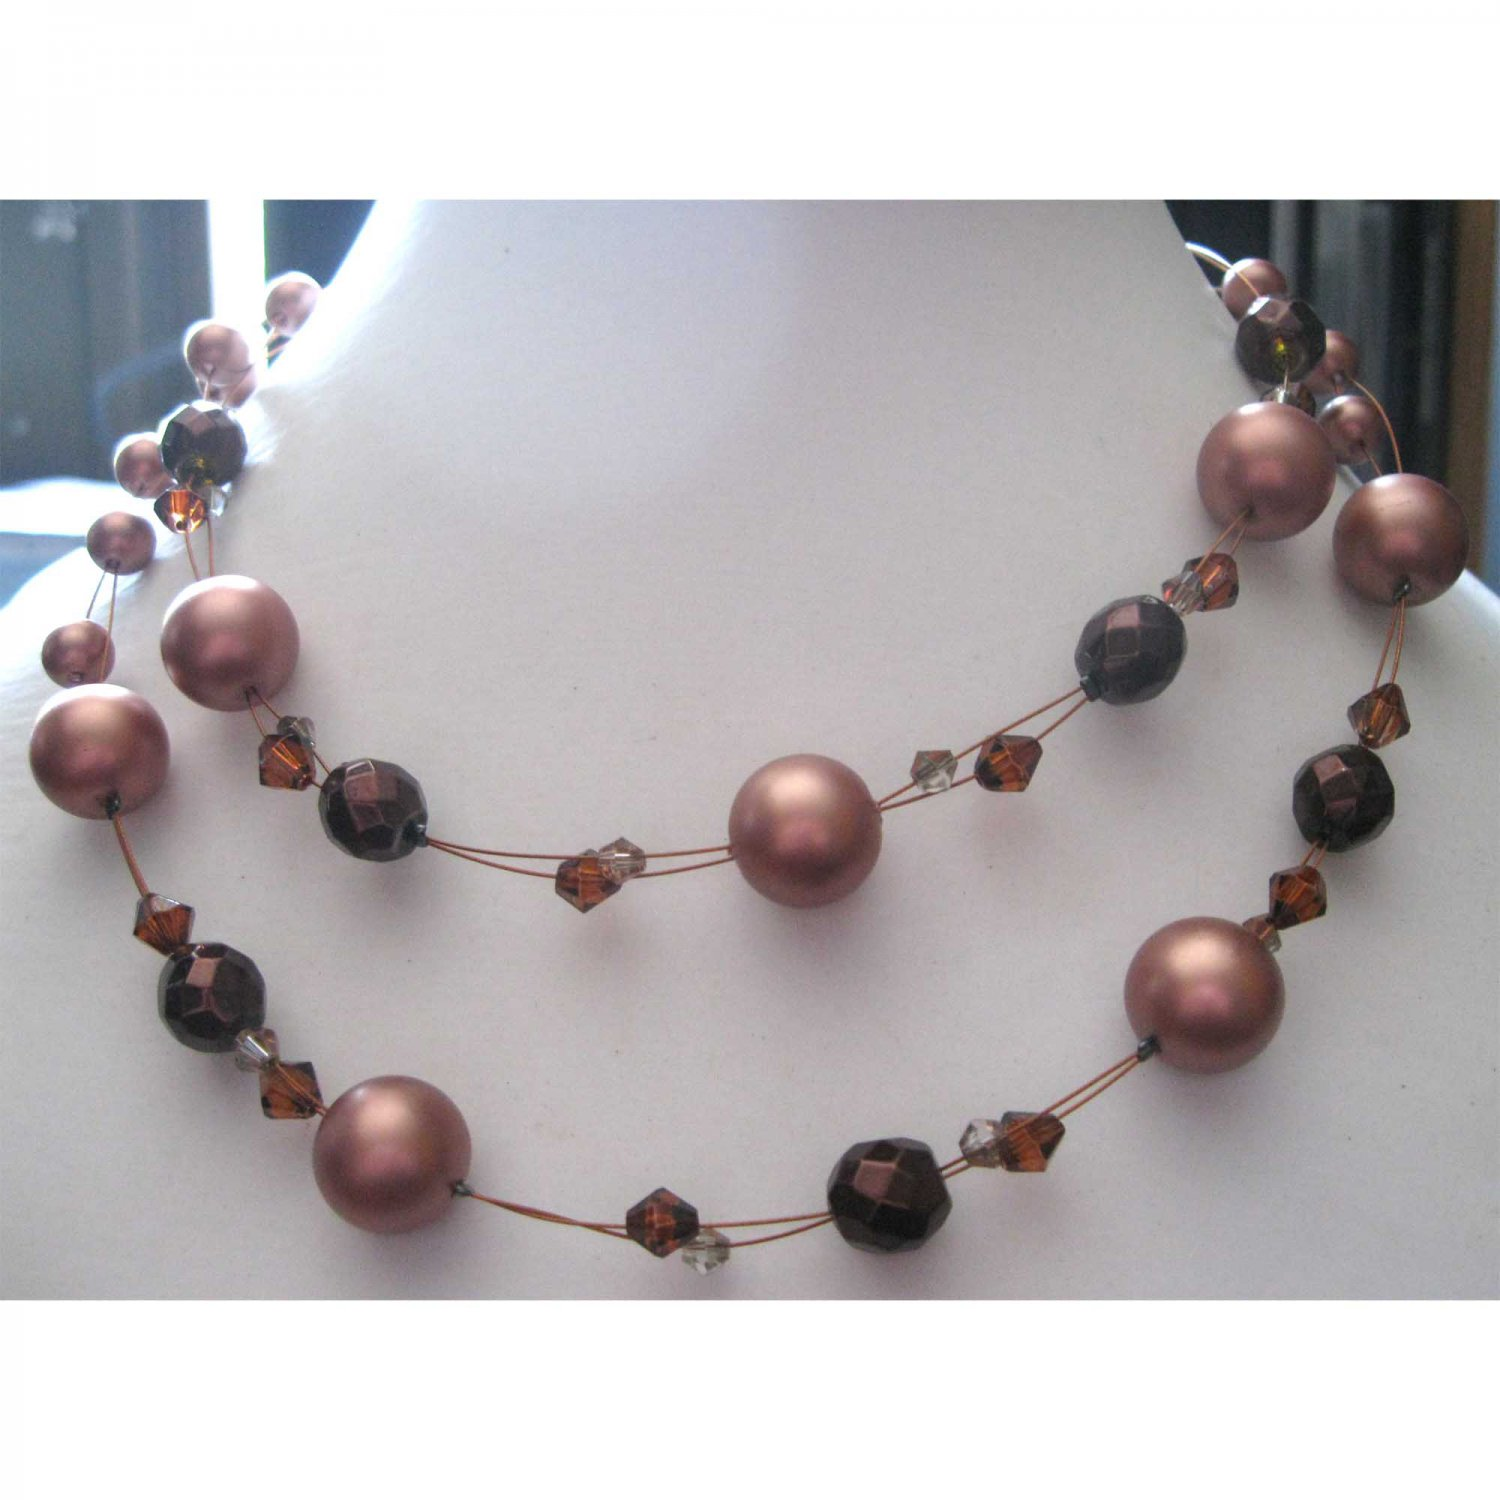 ON SALE: Double row brown fashion necklace